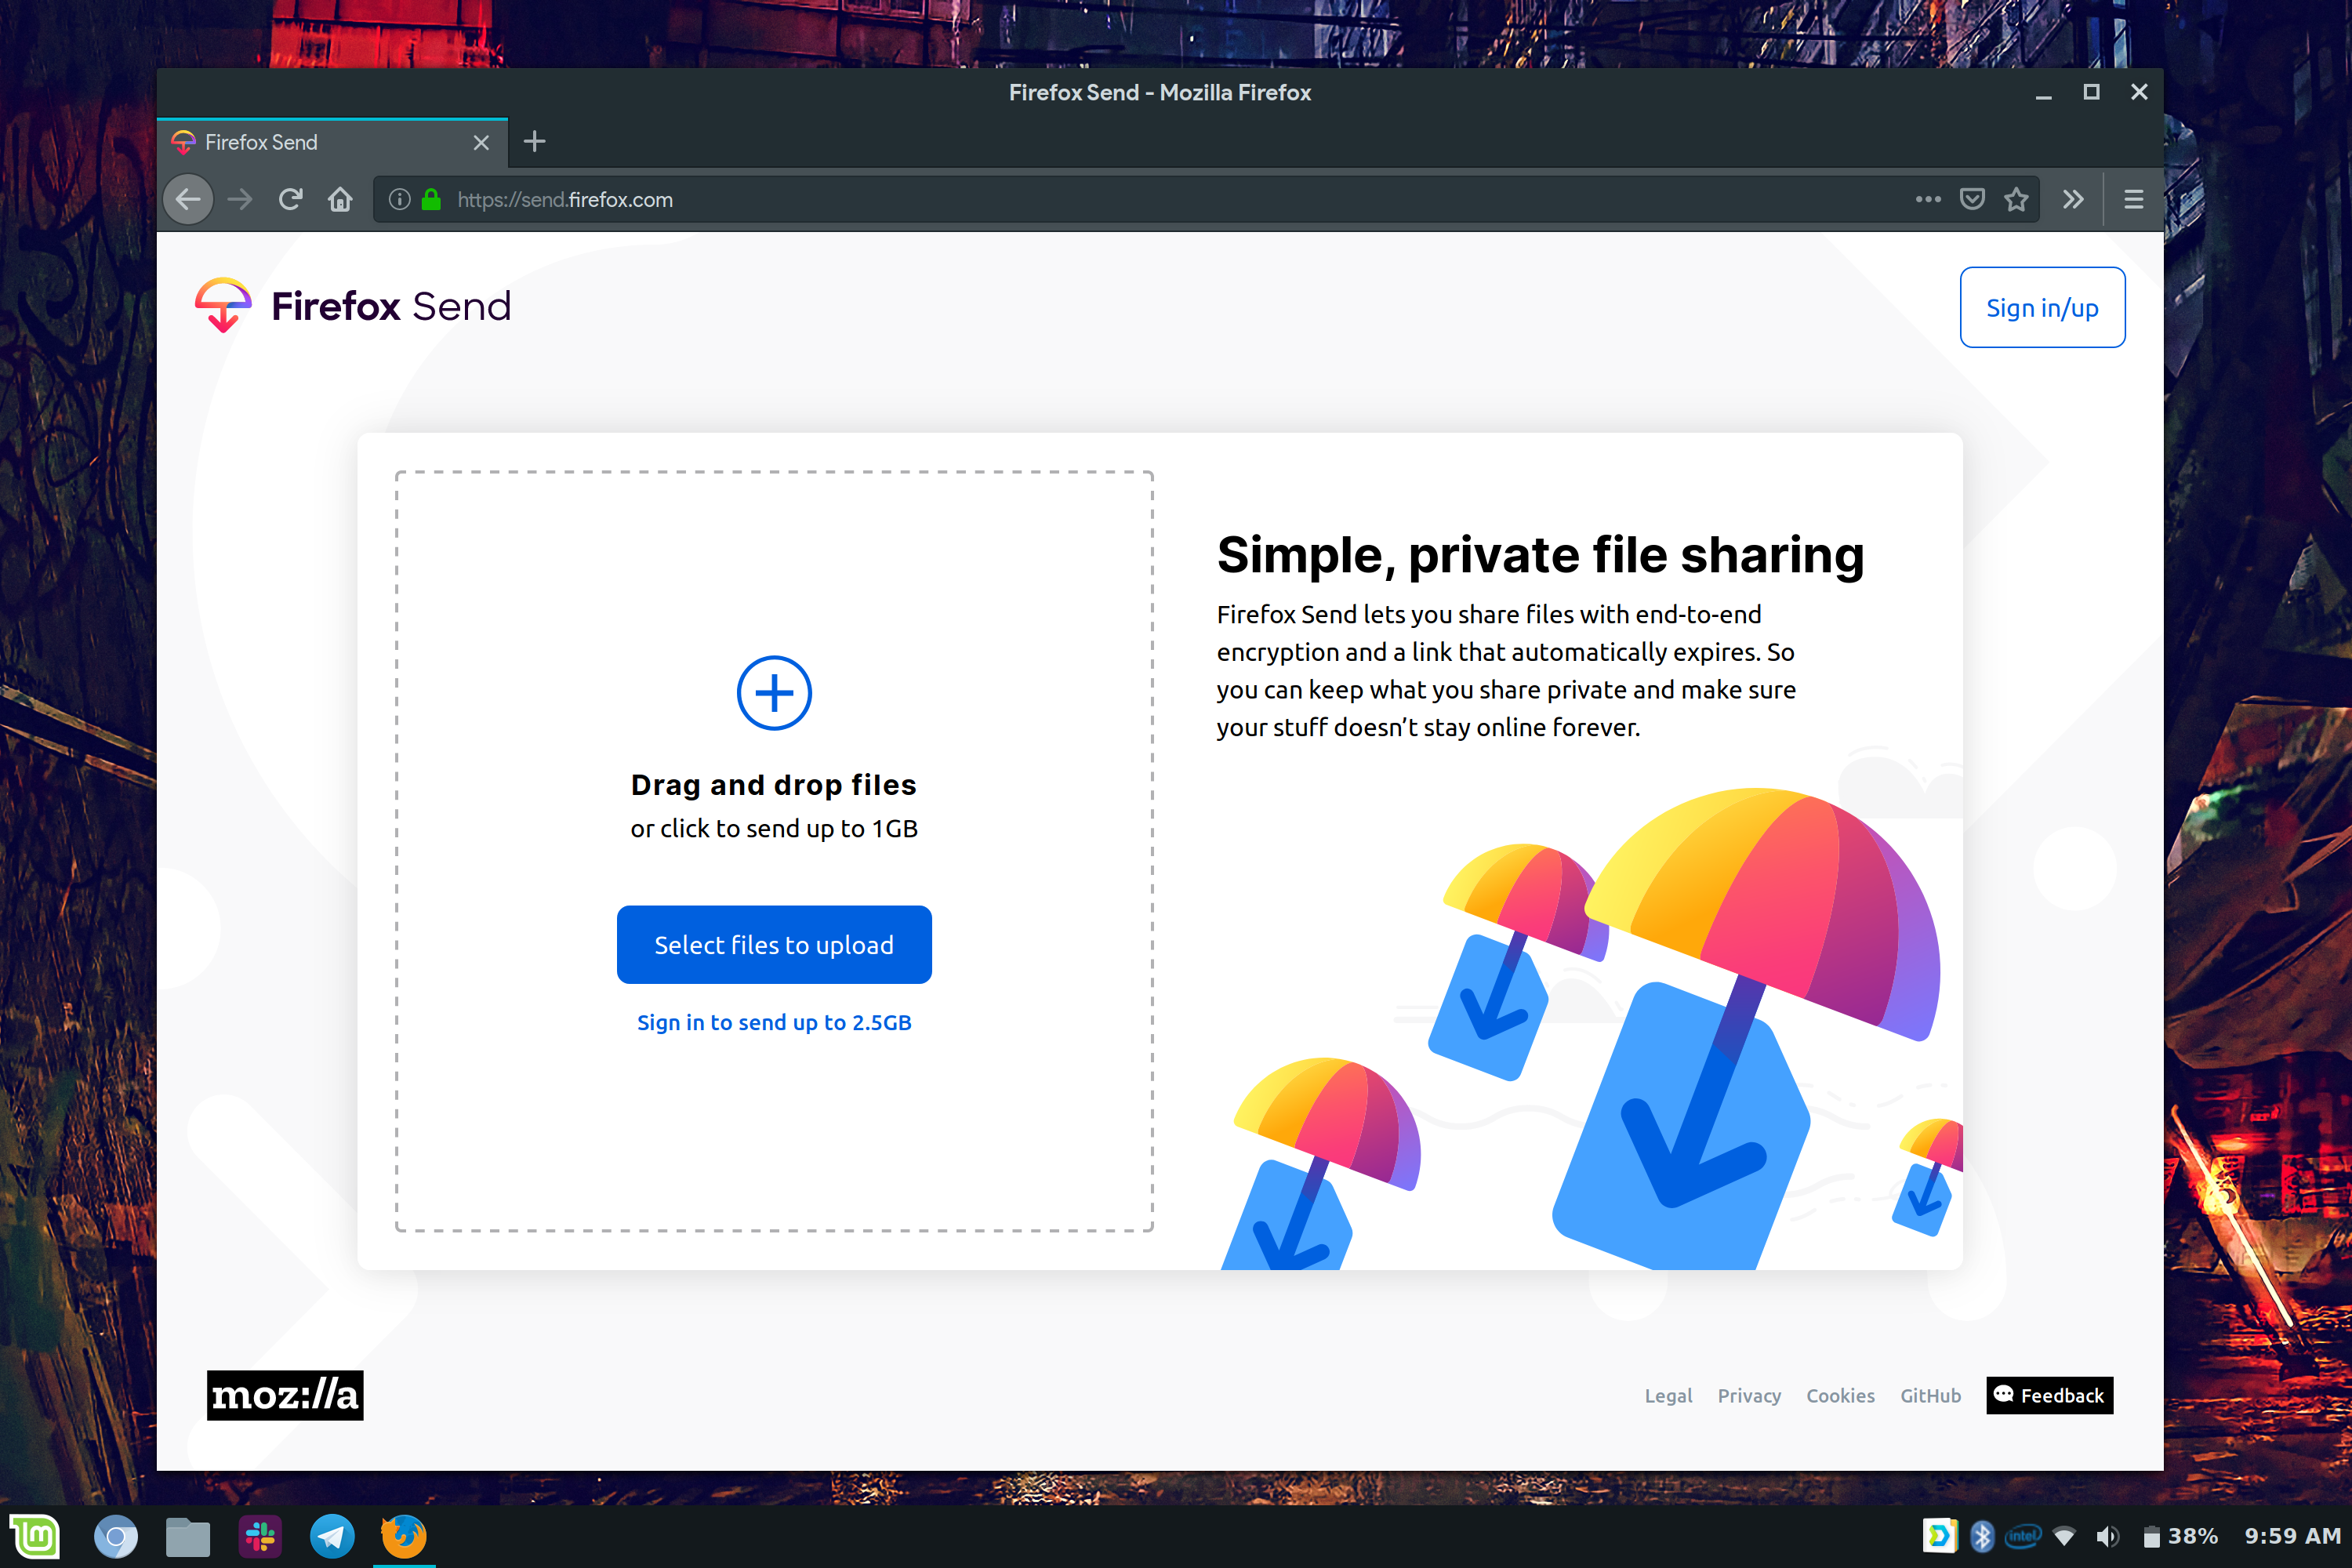 Firefox Send lets you share 1GB files with no strings attached